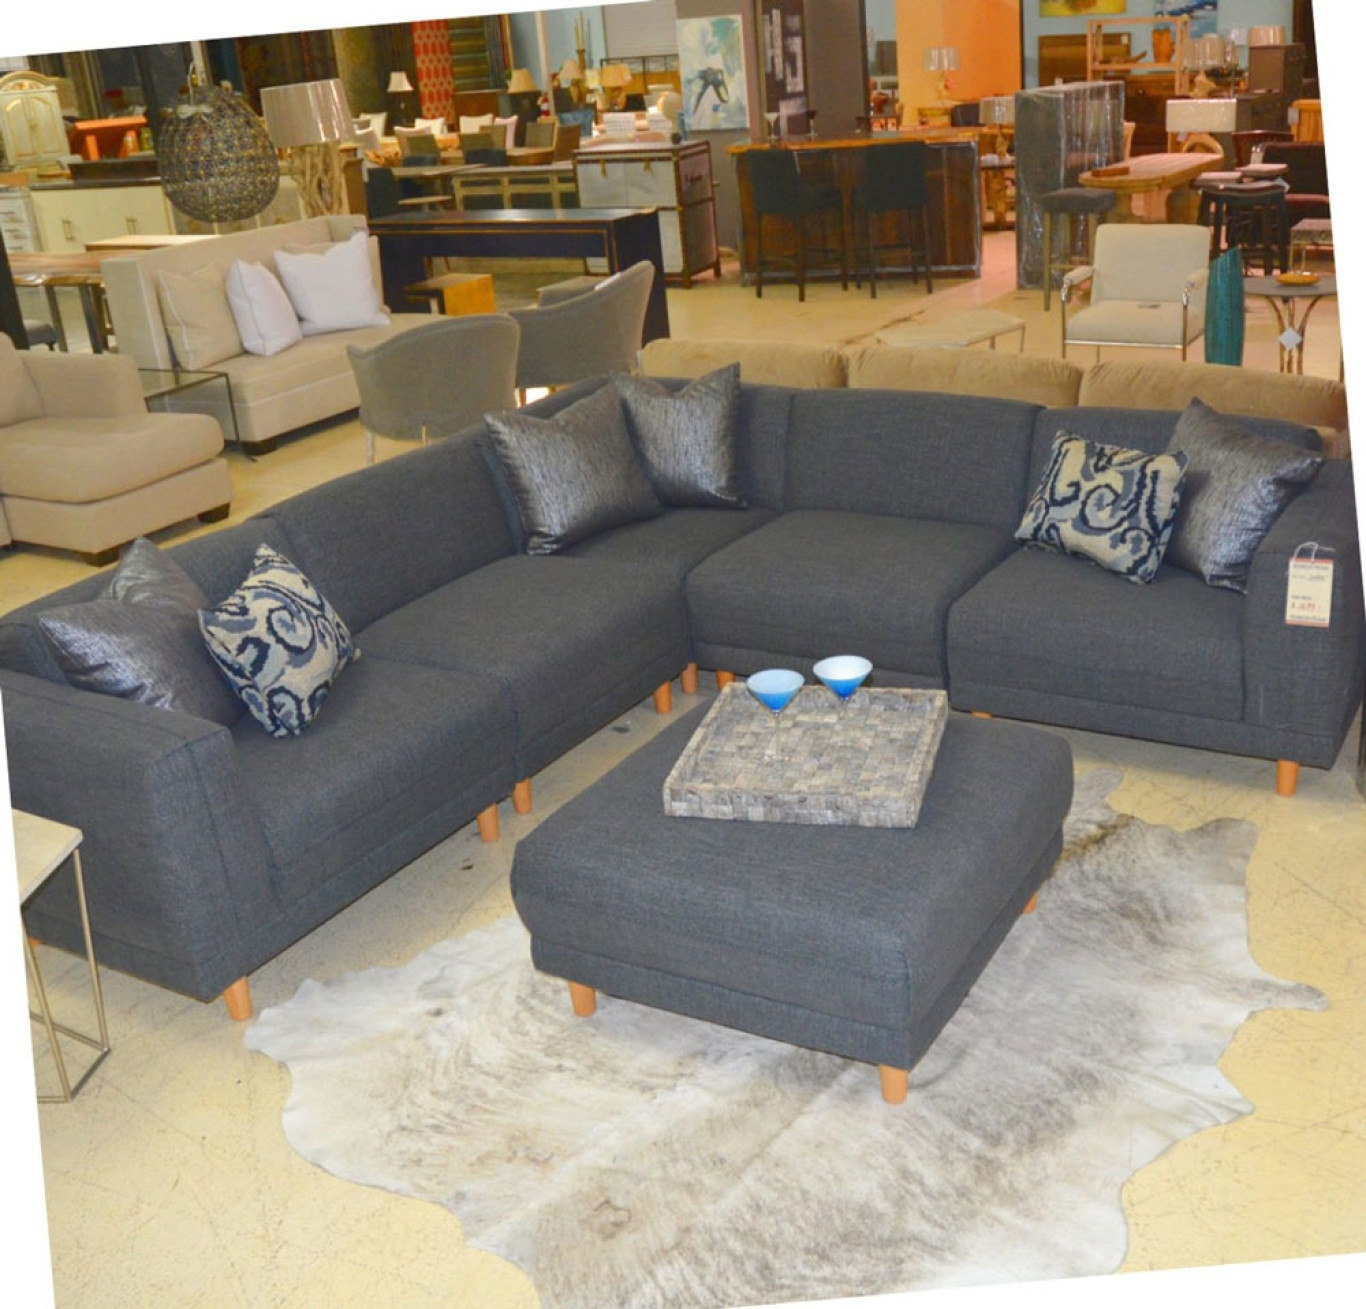 Homemakers Furniture Des Moines Iowa Regarding Homemakers Sectional Sofas (View 1 of 10)